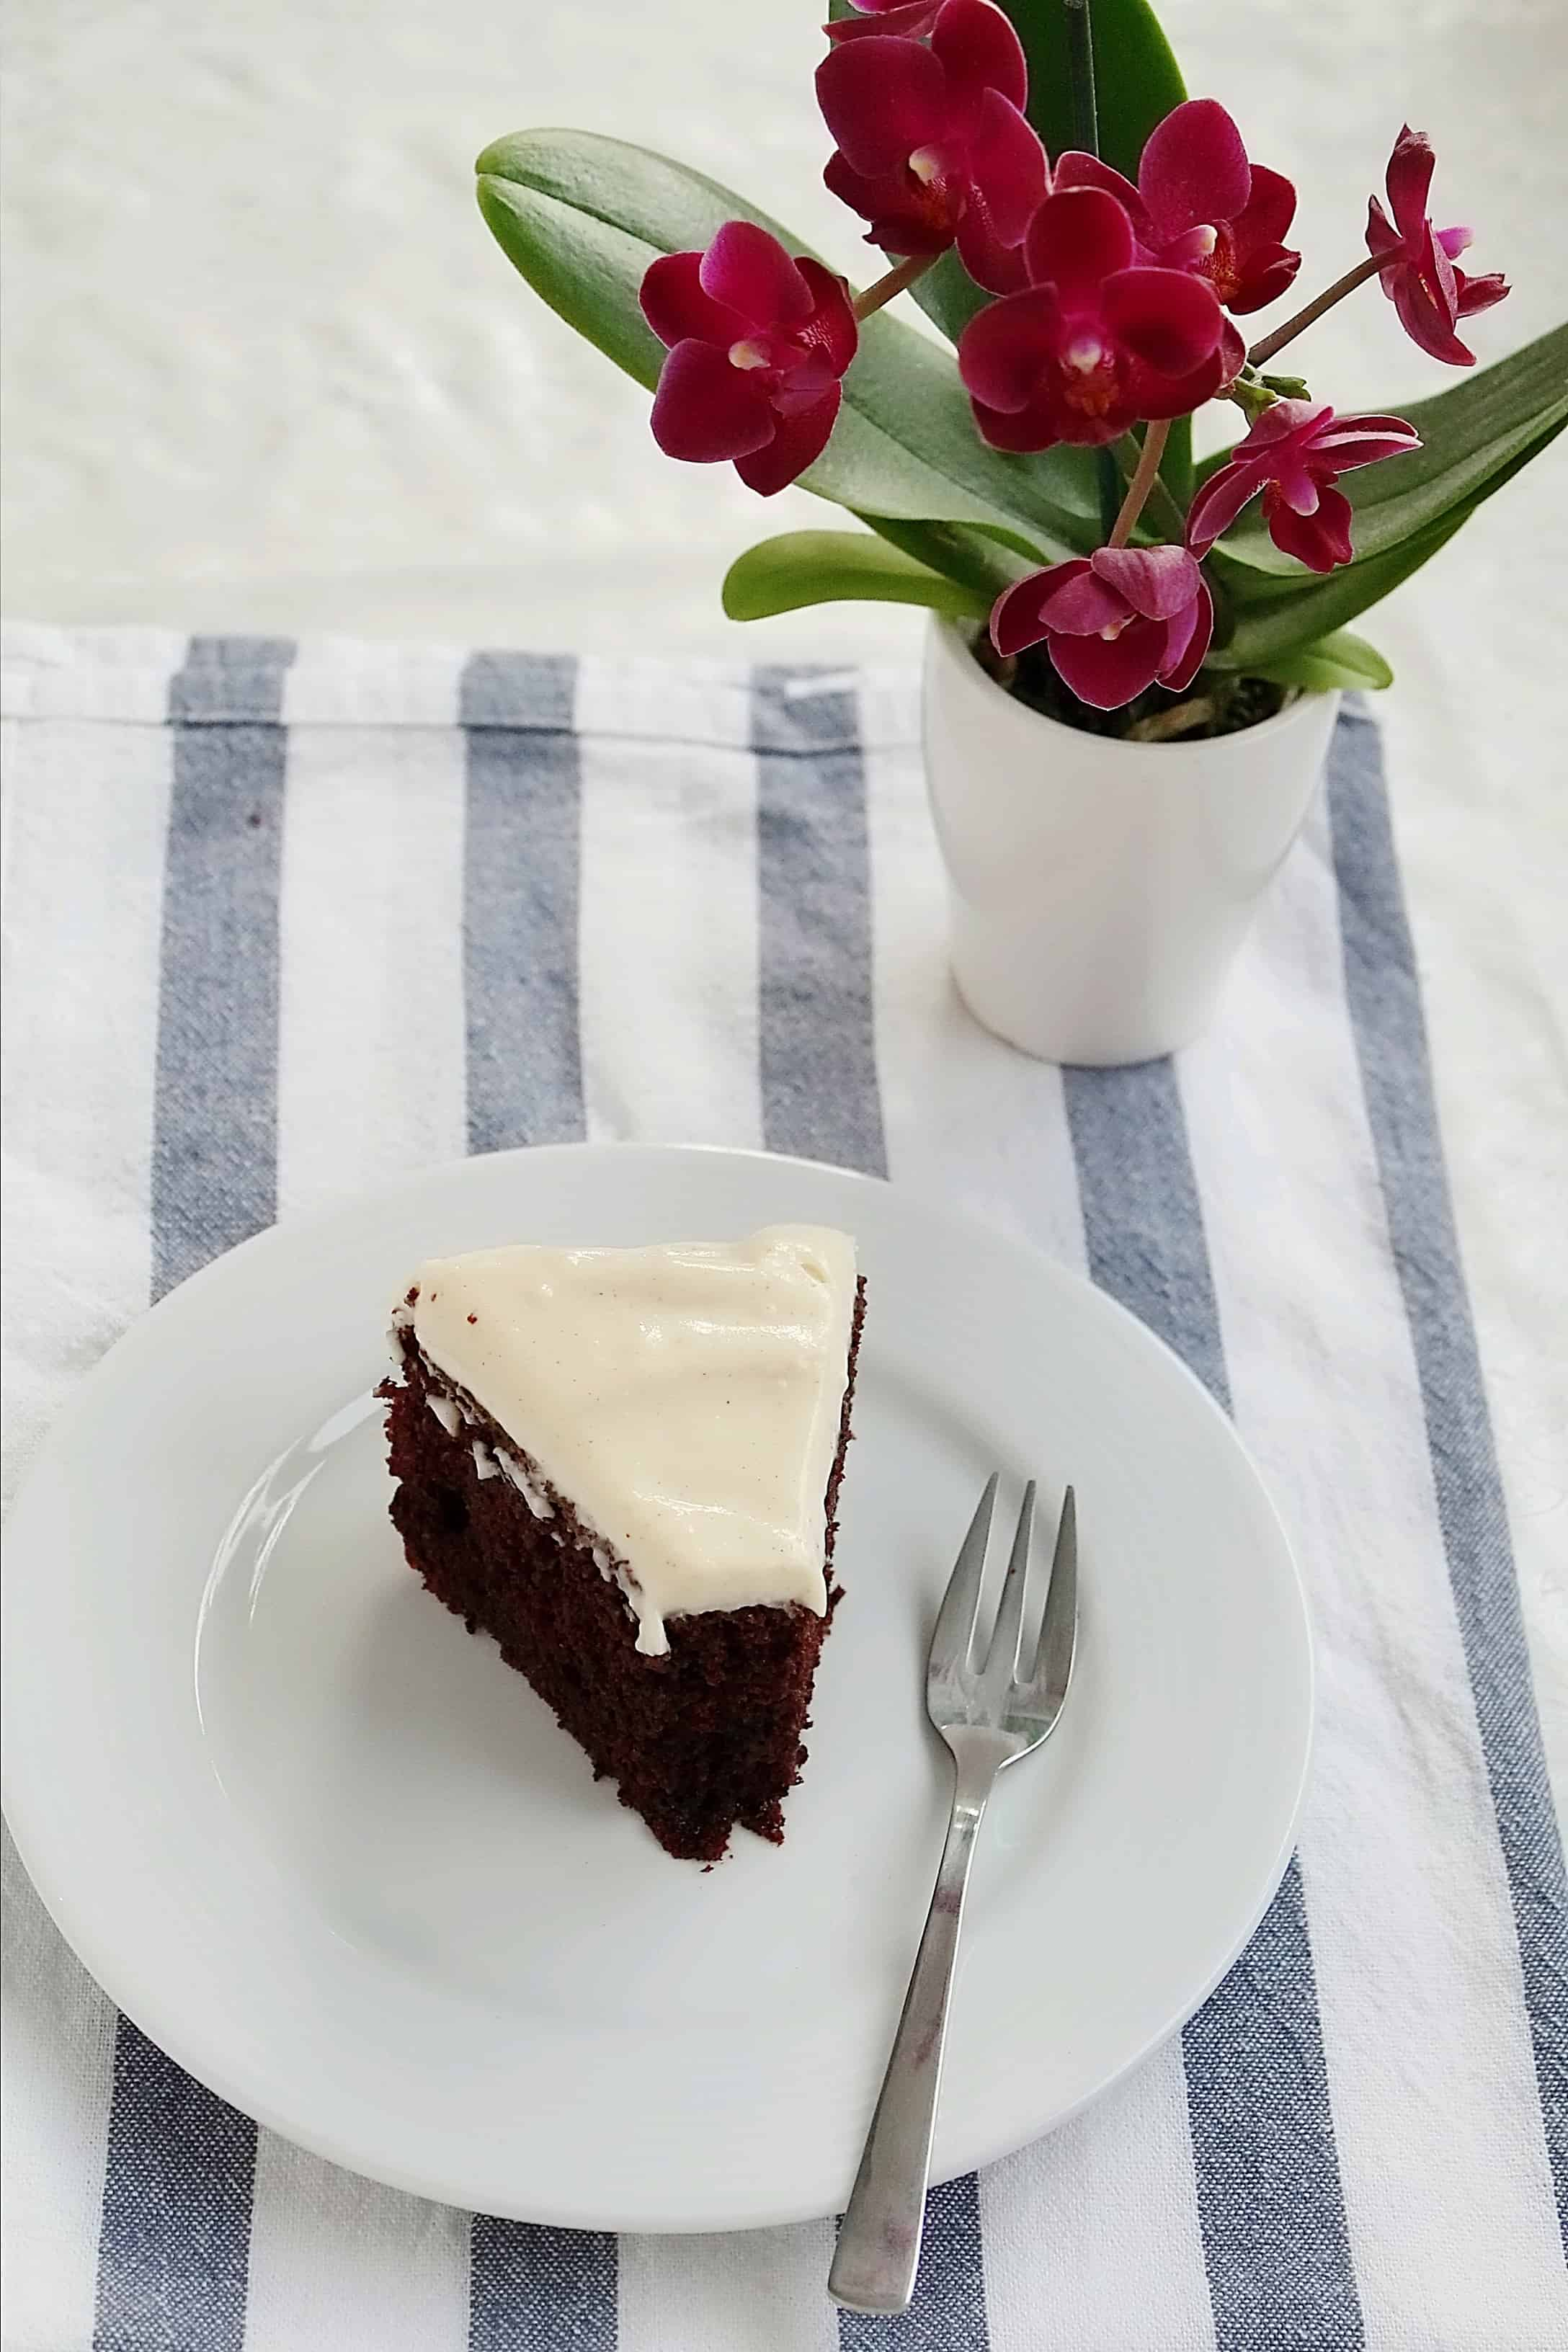 a slice of double chocolate cake on a plate